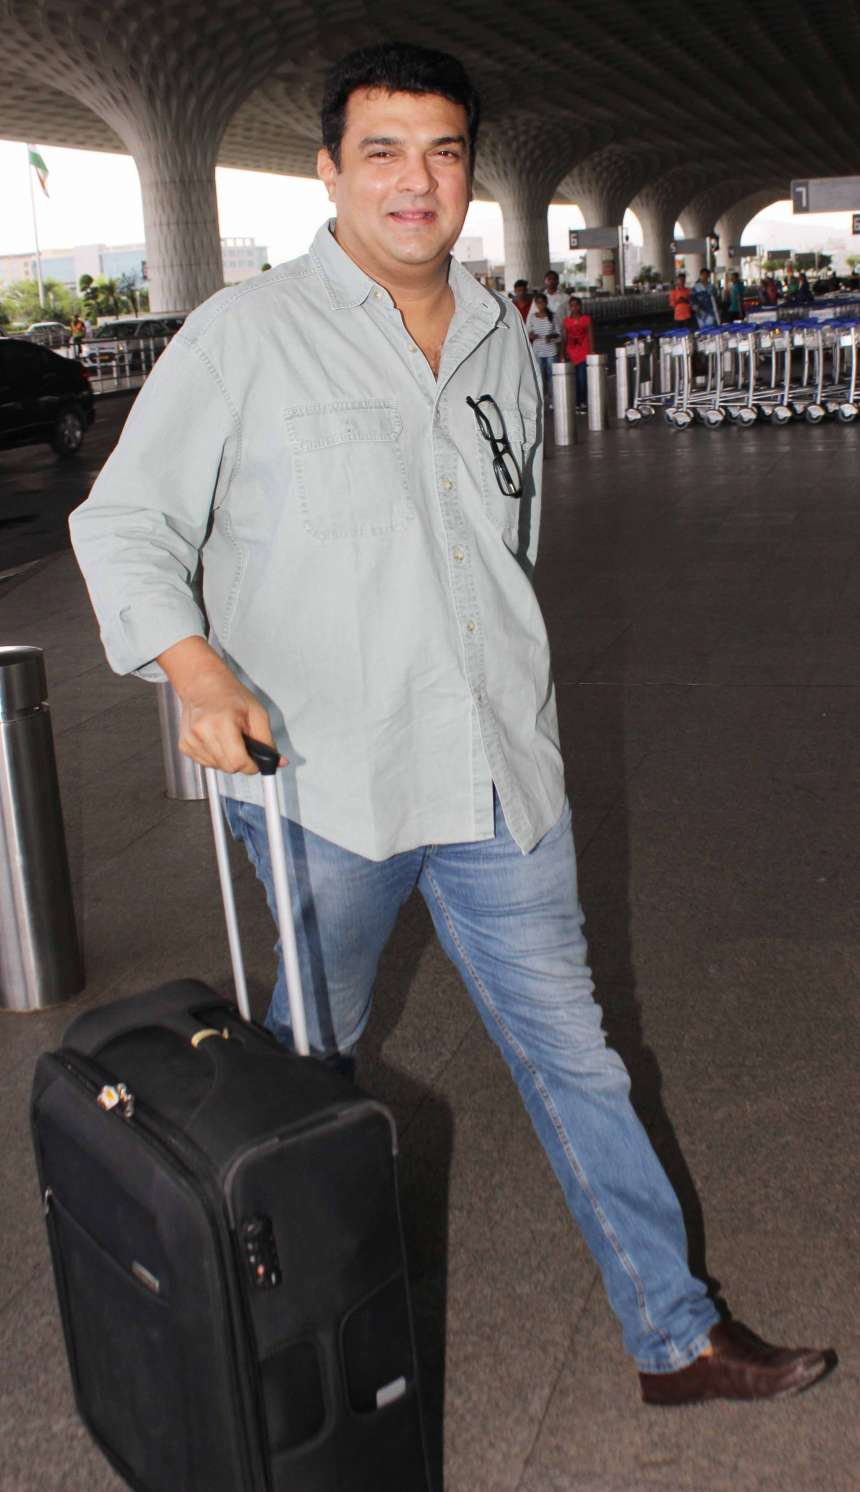 Siddharth Roy Kapur: Indian film producer Siddharth Roy Kapur was spotted at airport wearing a light coloured shirt with blue denims and brown loafers. This is most common outfit among men for traveling.